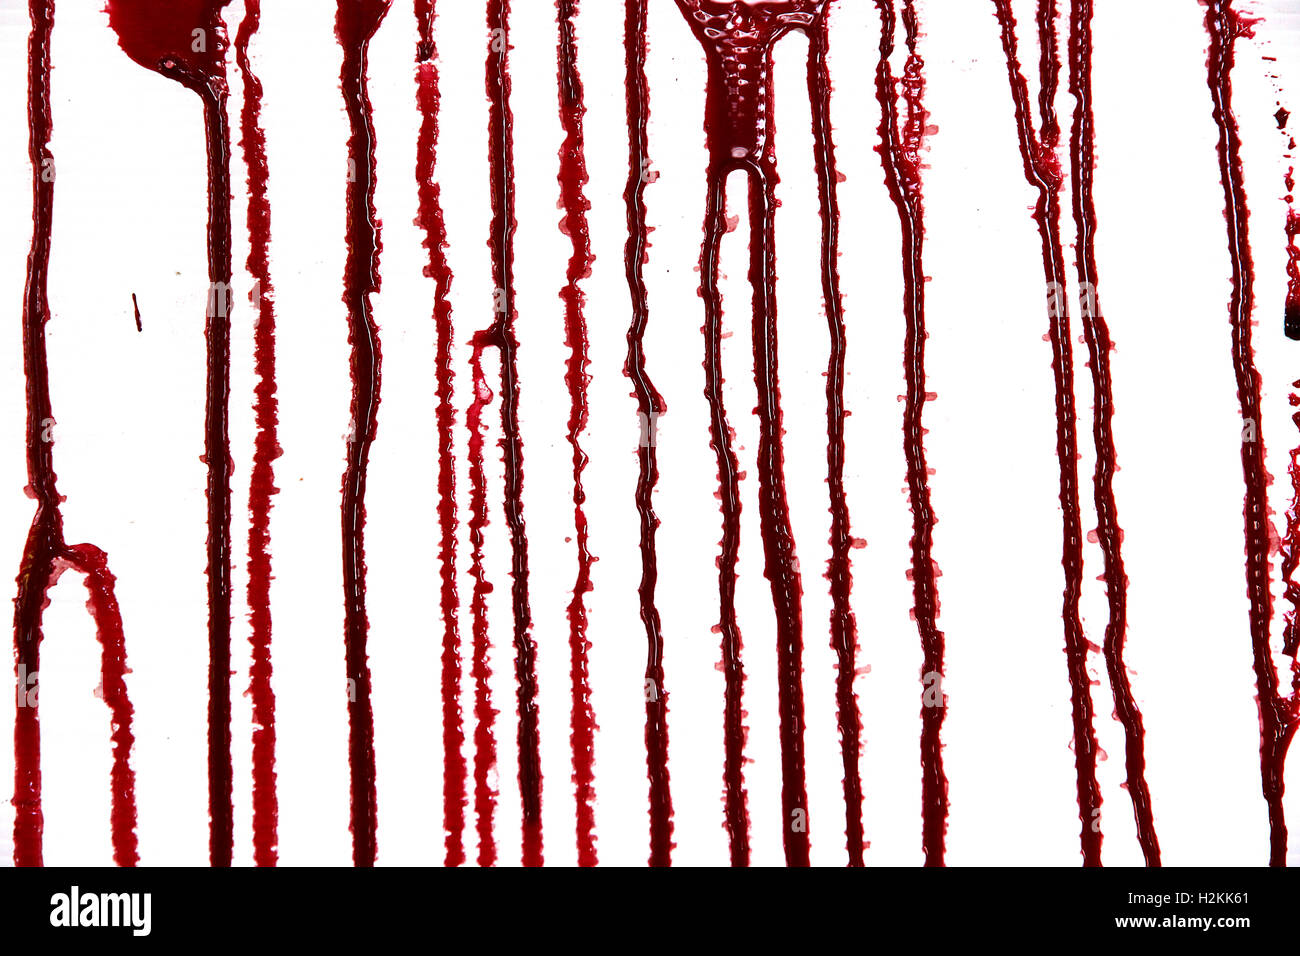 set 8. blood drop and bloodstains on isolated white background for horror content. - Stock Image